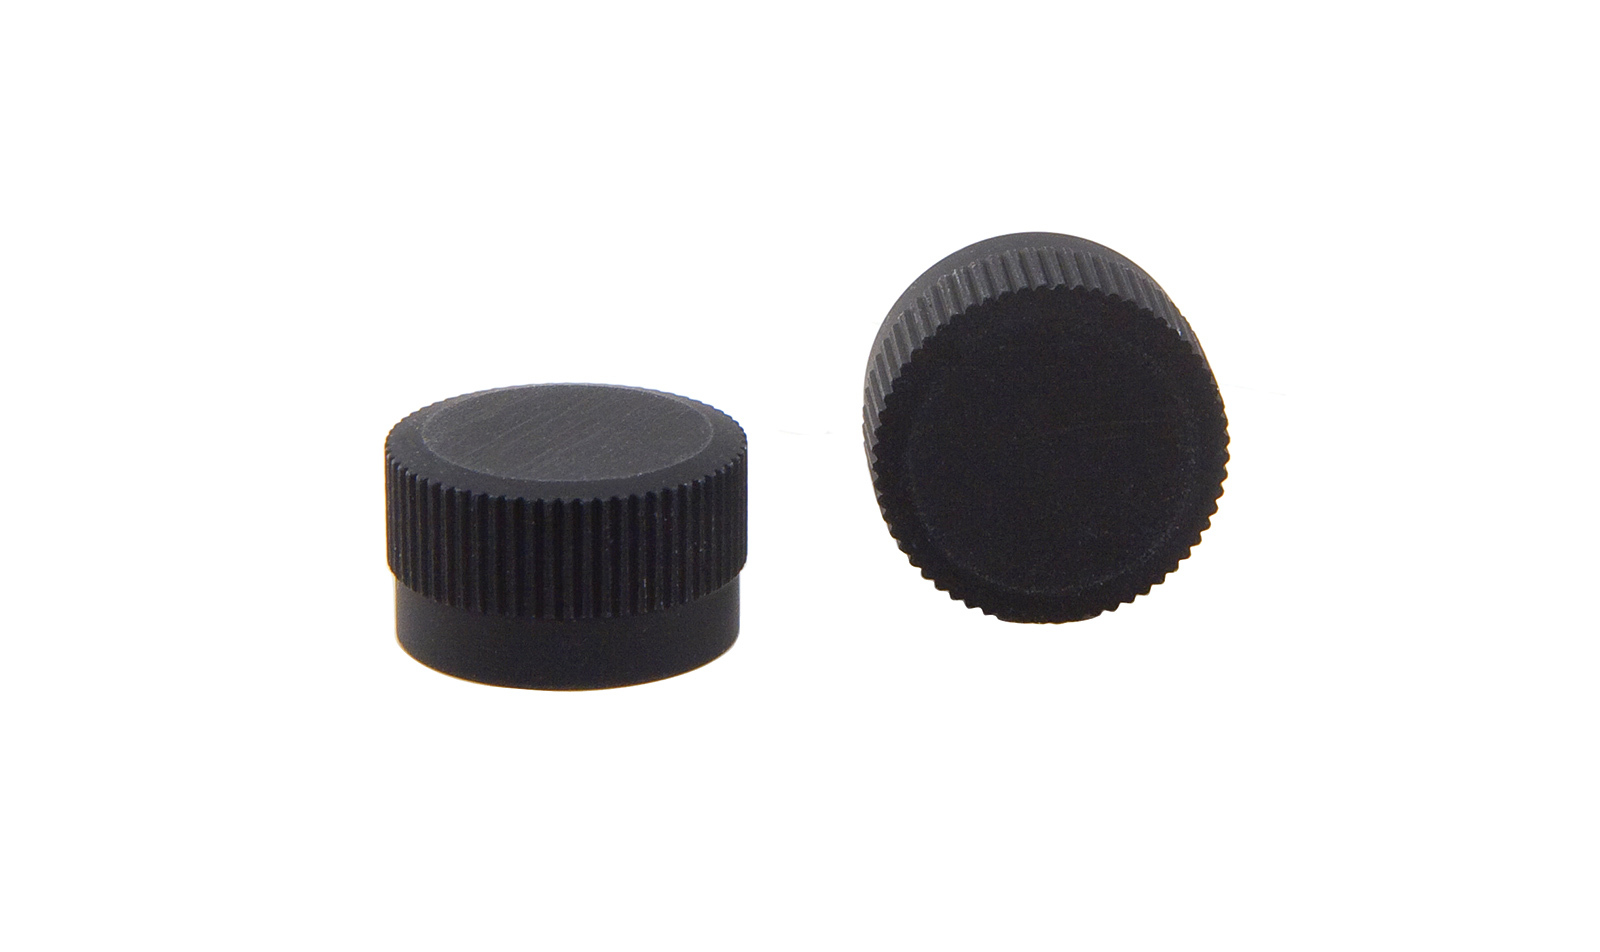 ACOG® Adjuster Caps for 1.5x16S, 1.5x24, 2x20, 3x24 and 3x30 Models